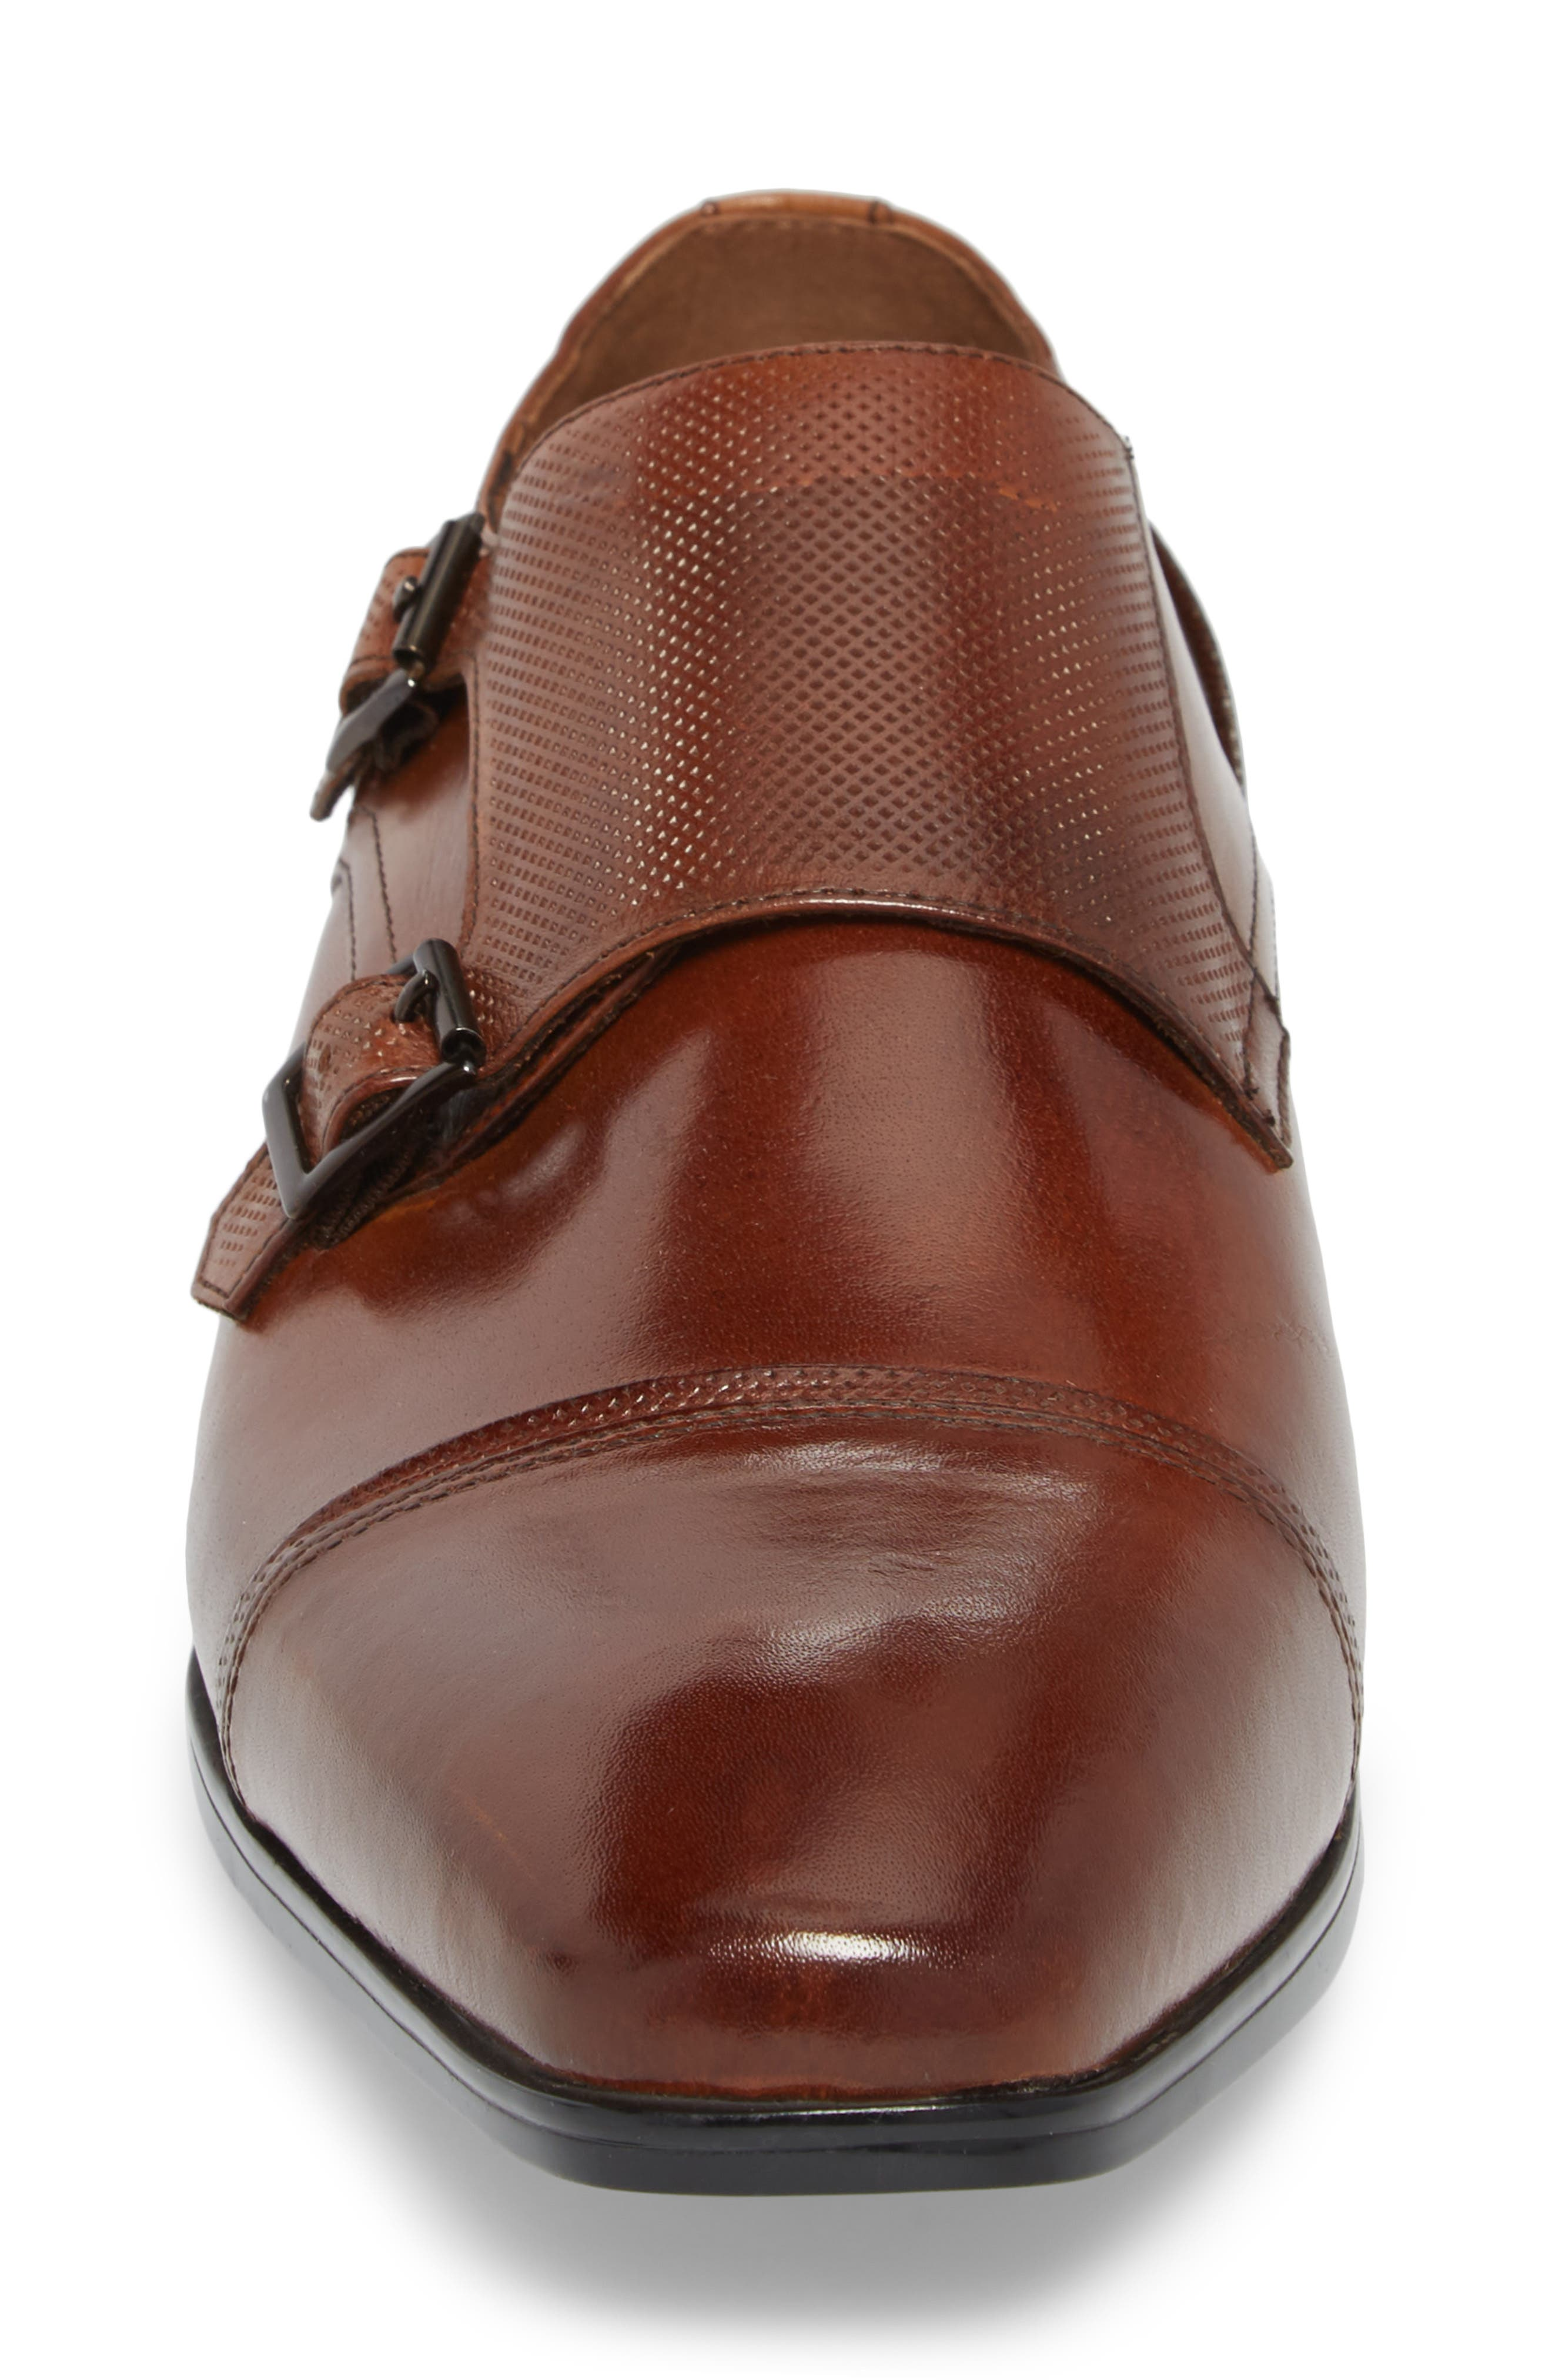 Oliver Cap Toe Monk Shoe,                             Alternate thumbnail 4, color,                             Cognac Leather